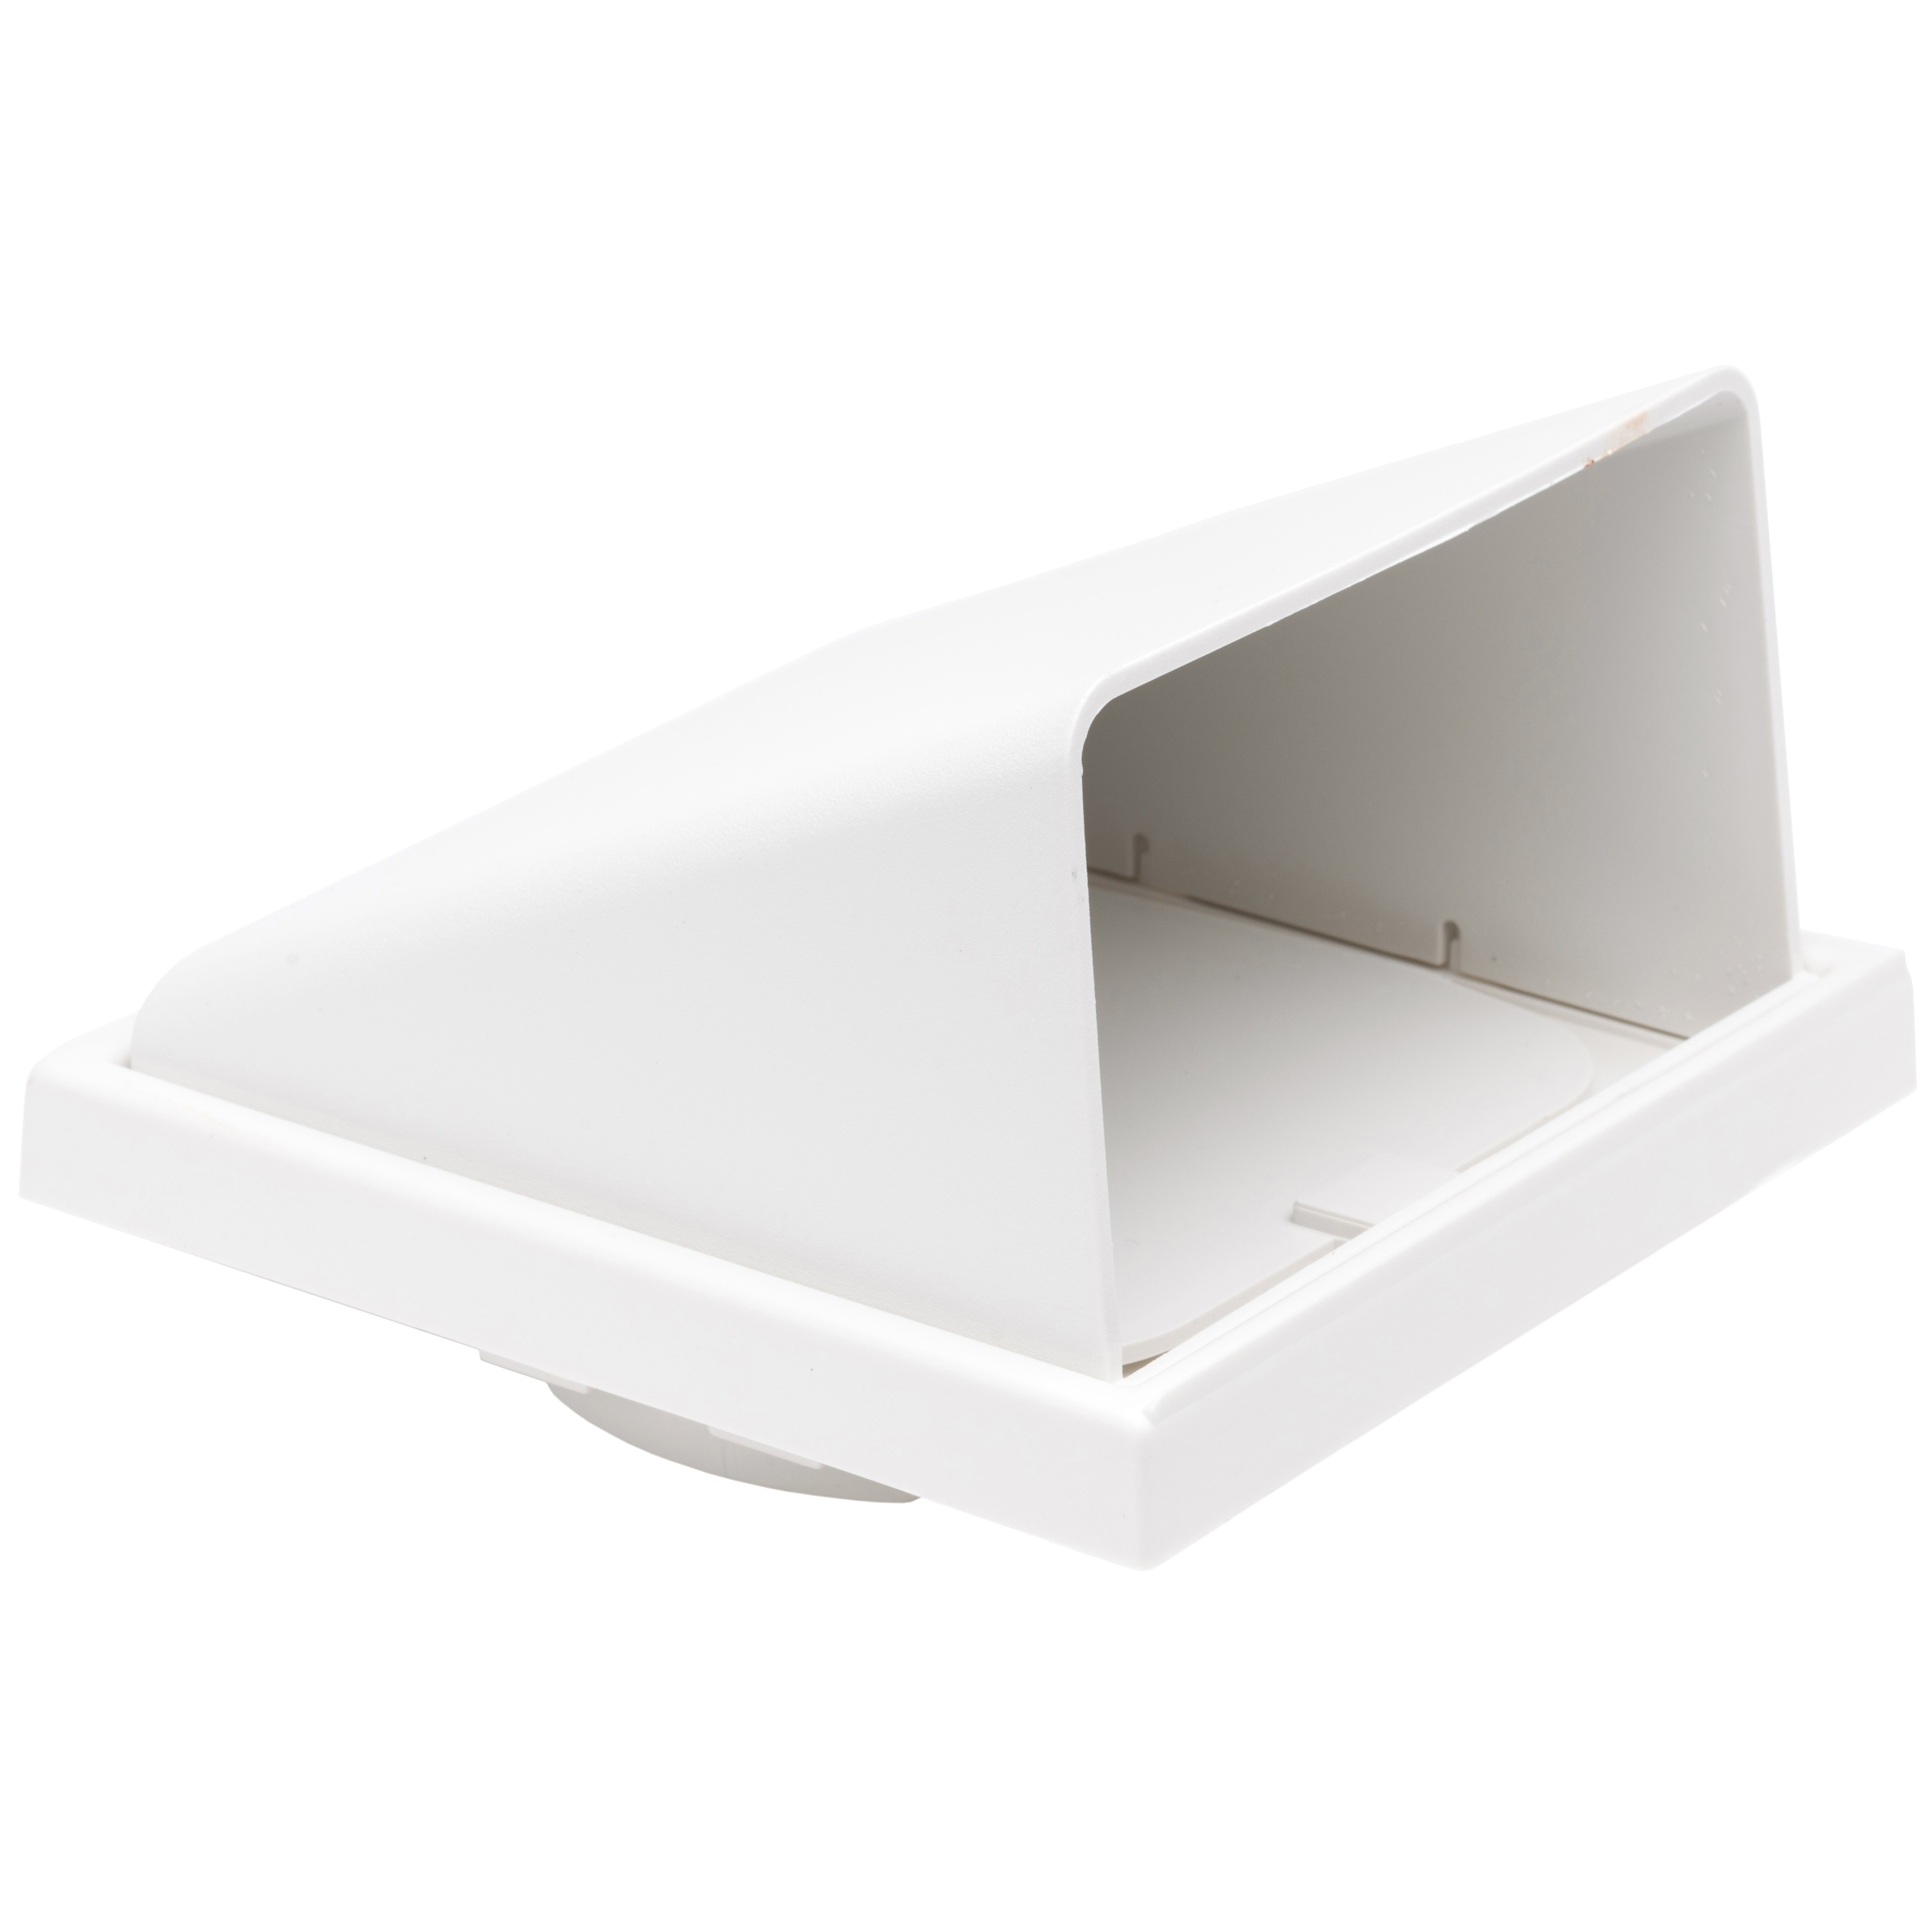 Manrose Round Ducting Pipe Wall Hood Cowled Outlet - White, 125mm